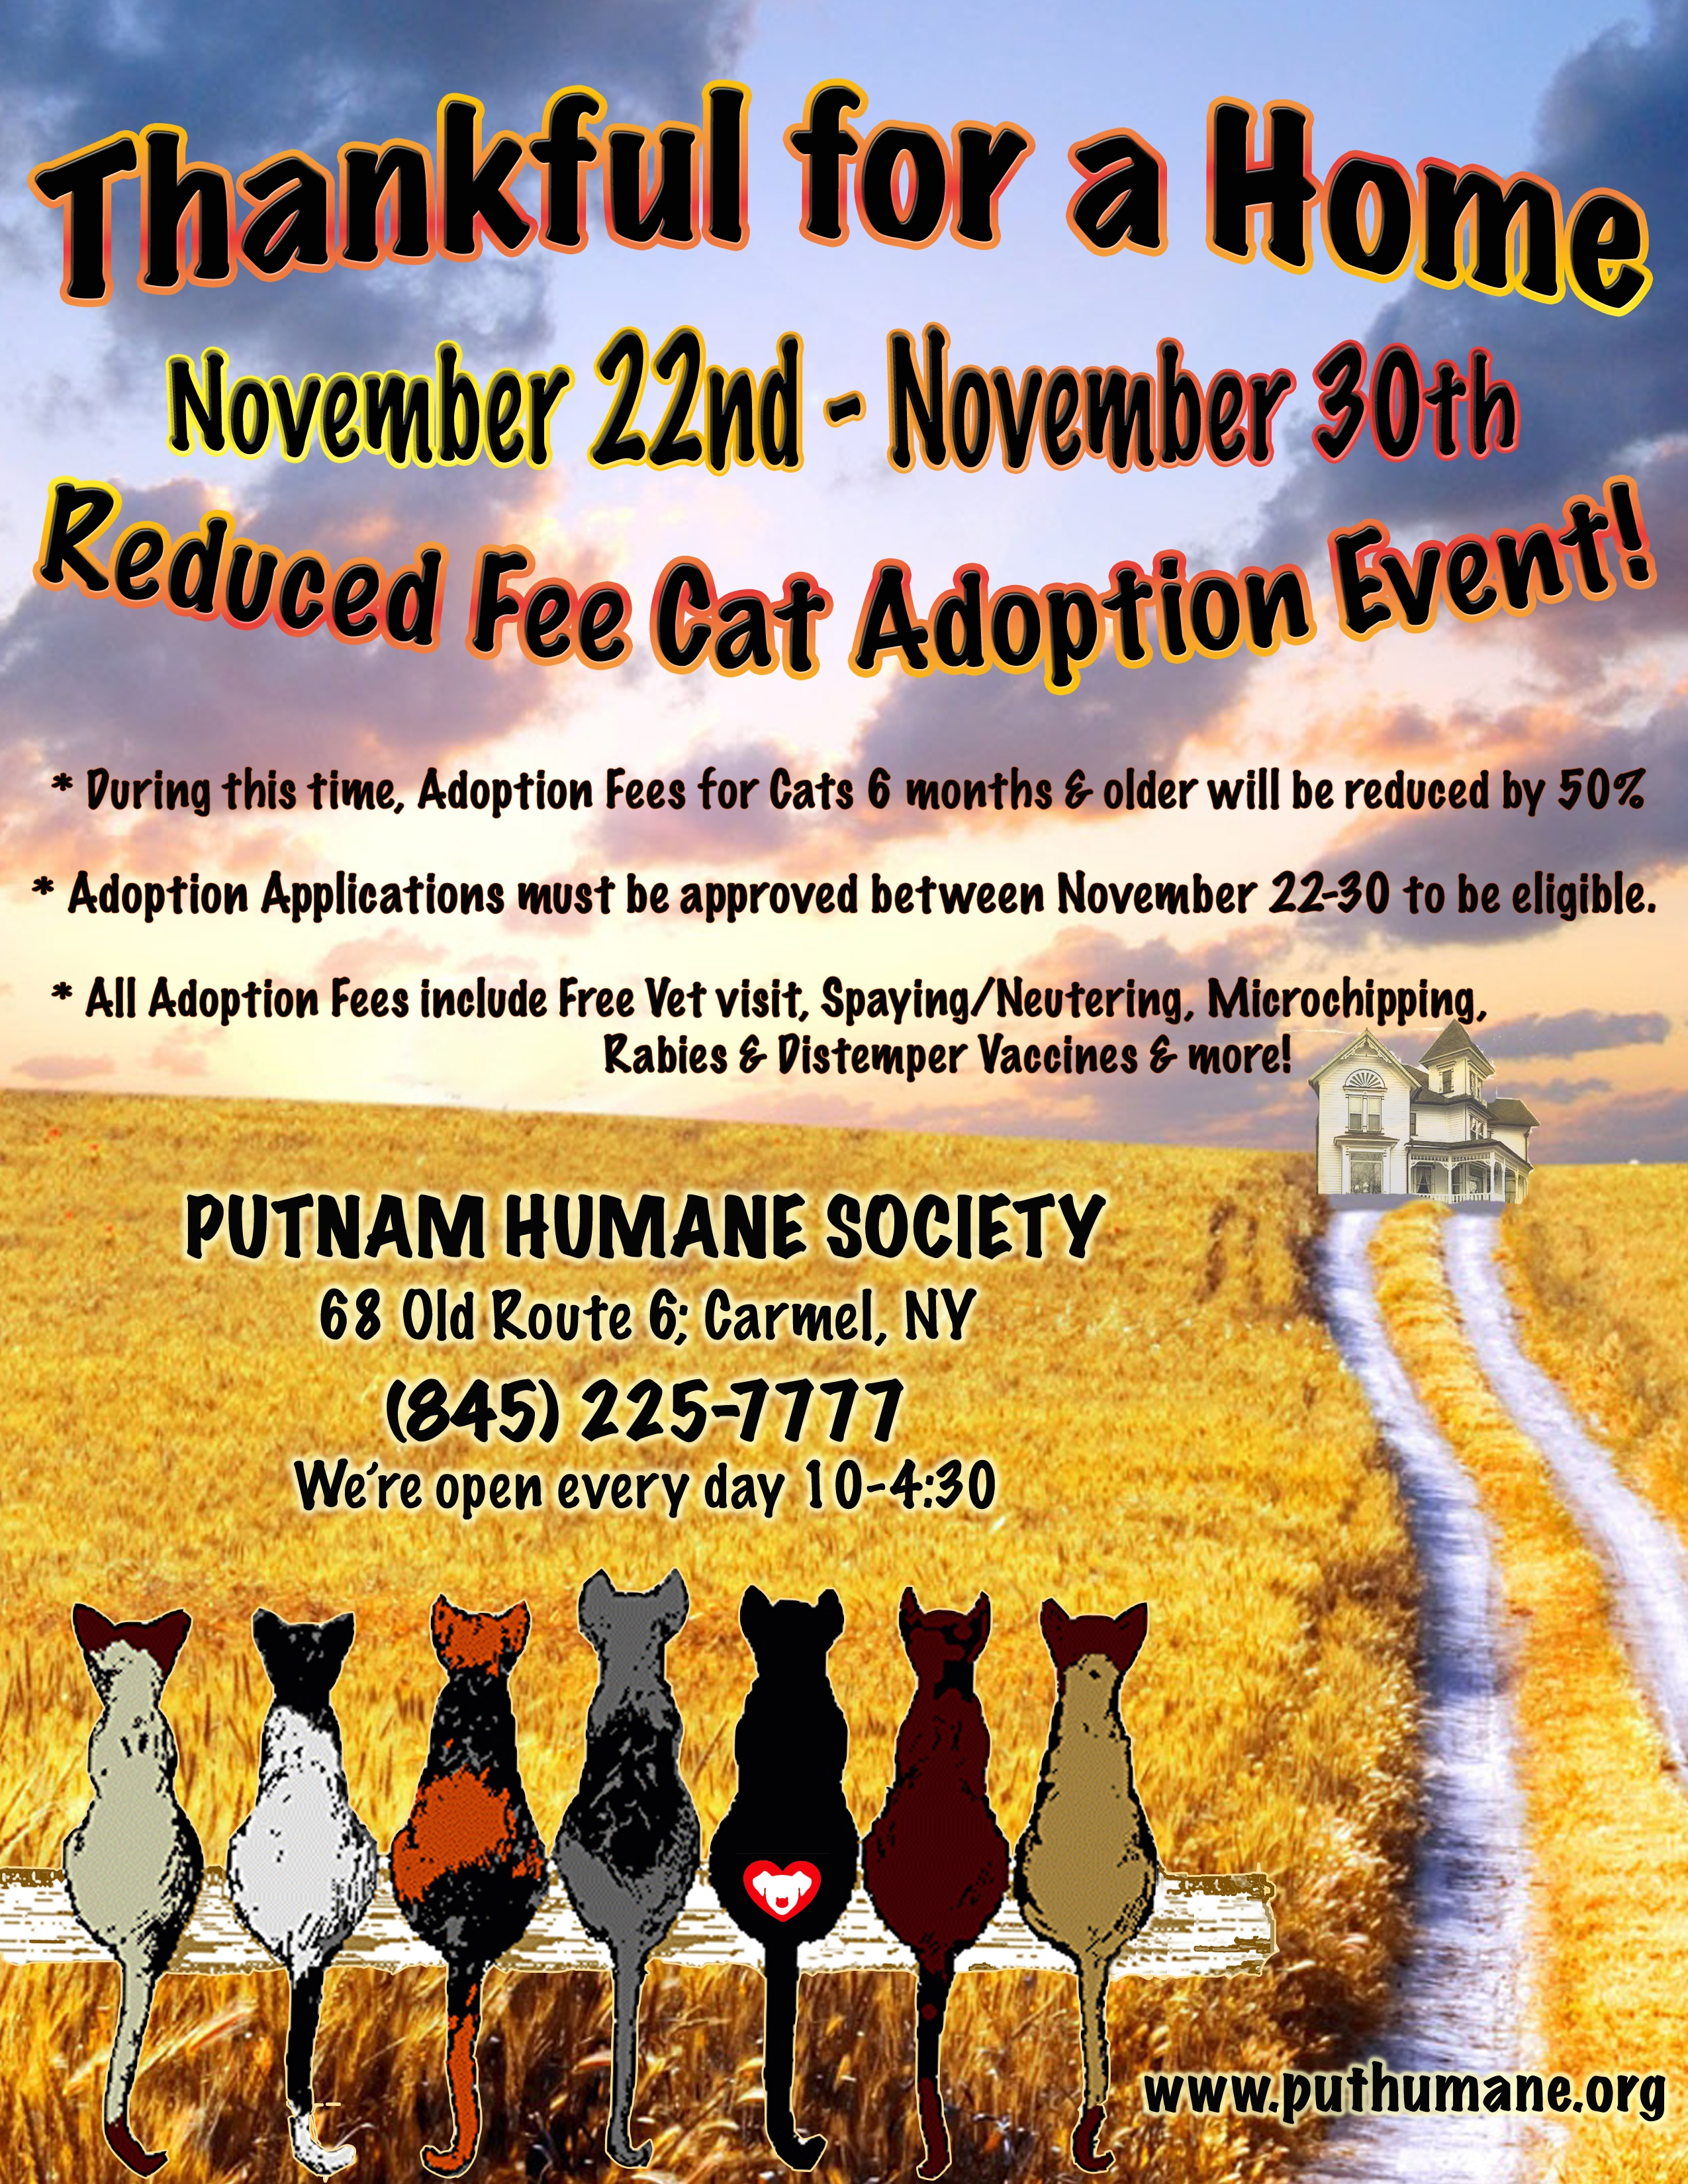 Upcoming Events Giving Thanks Reduced Fee Cat Adoption